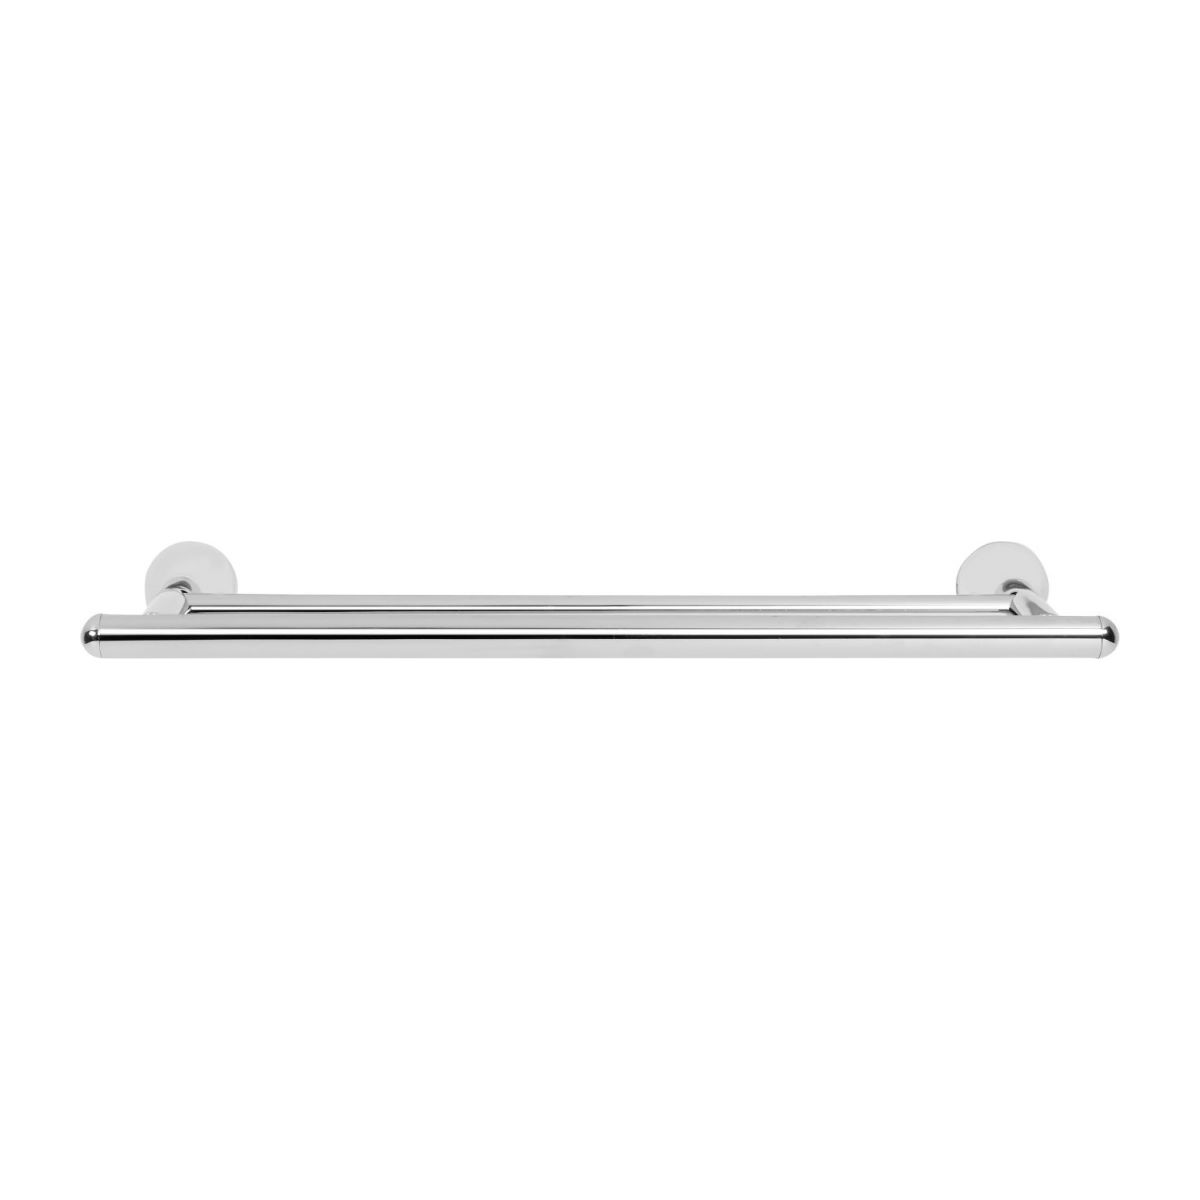 Double towel holder 45cm made in stainless steel n°2